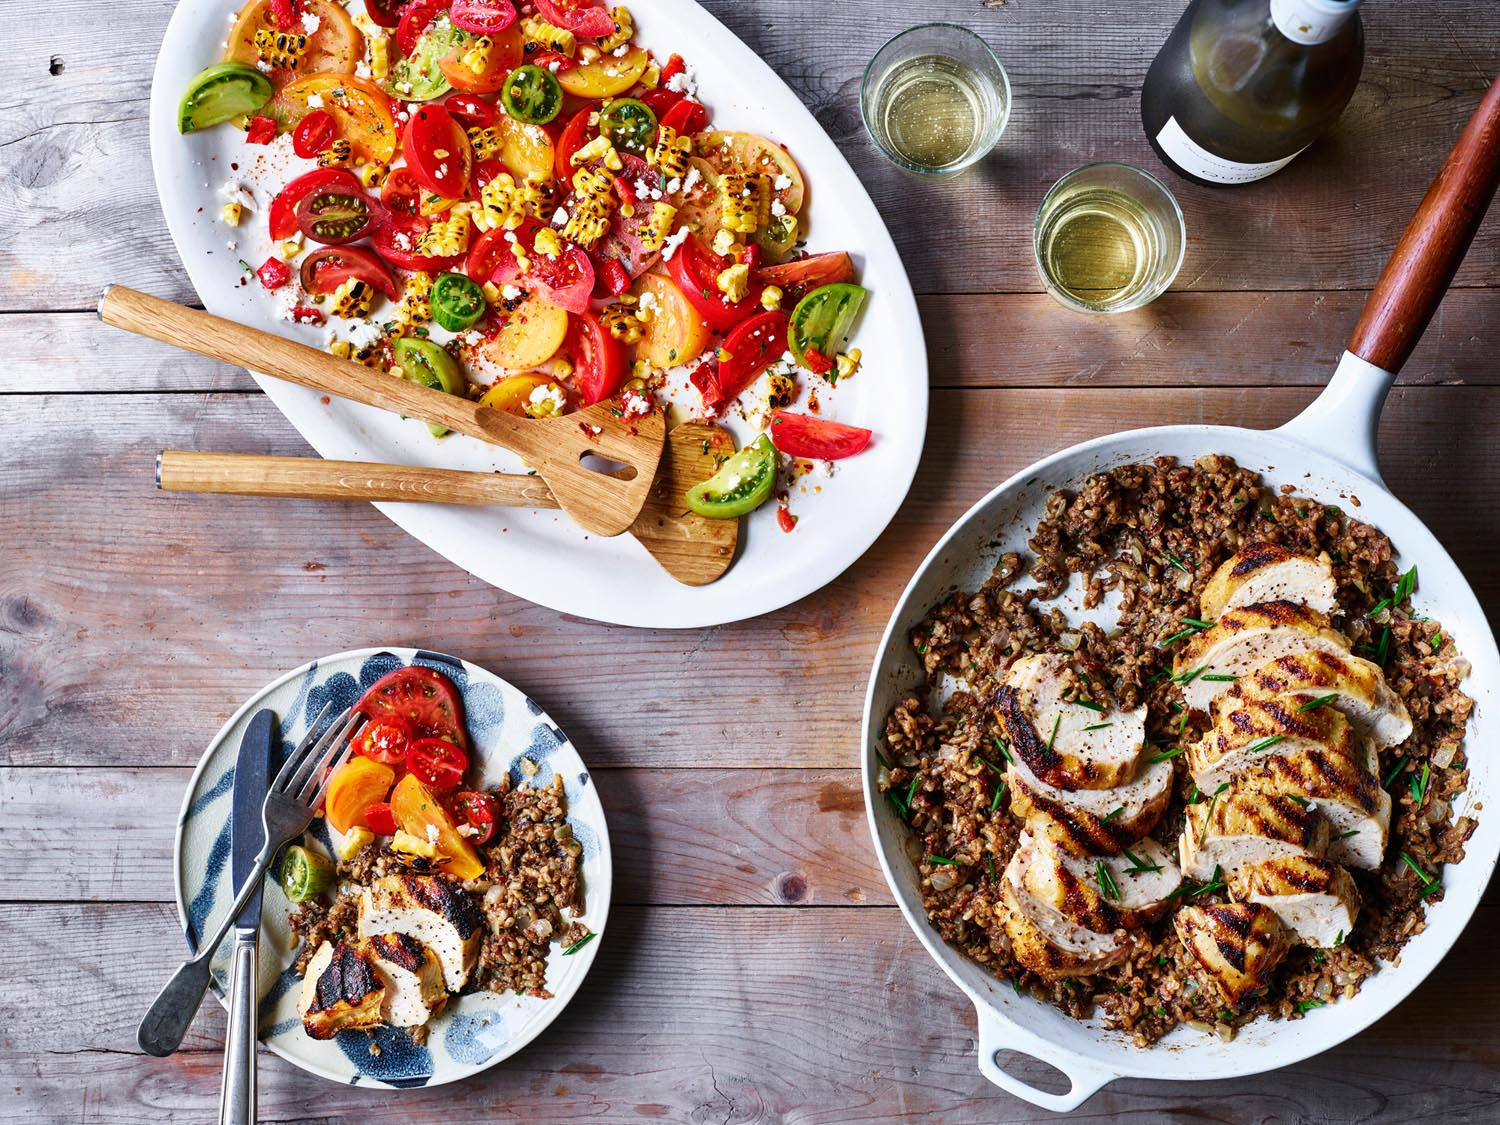 Group_Shot_Tomato_Salad_Grilled_Chicken_Breast_27152_Table_rsd